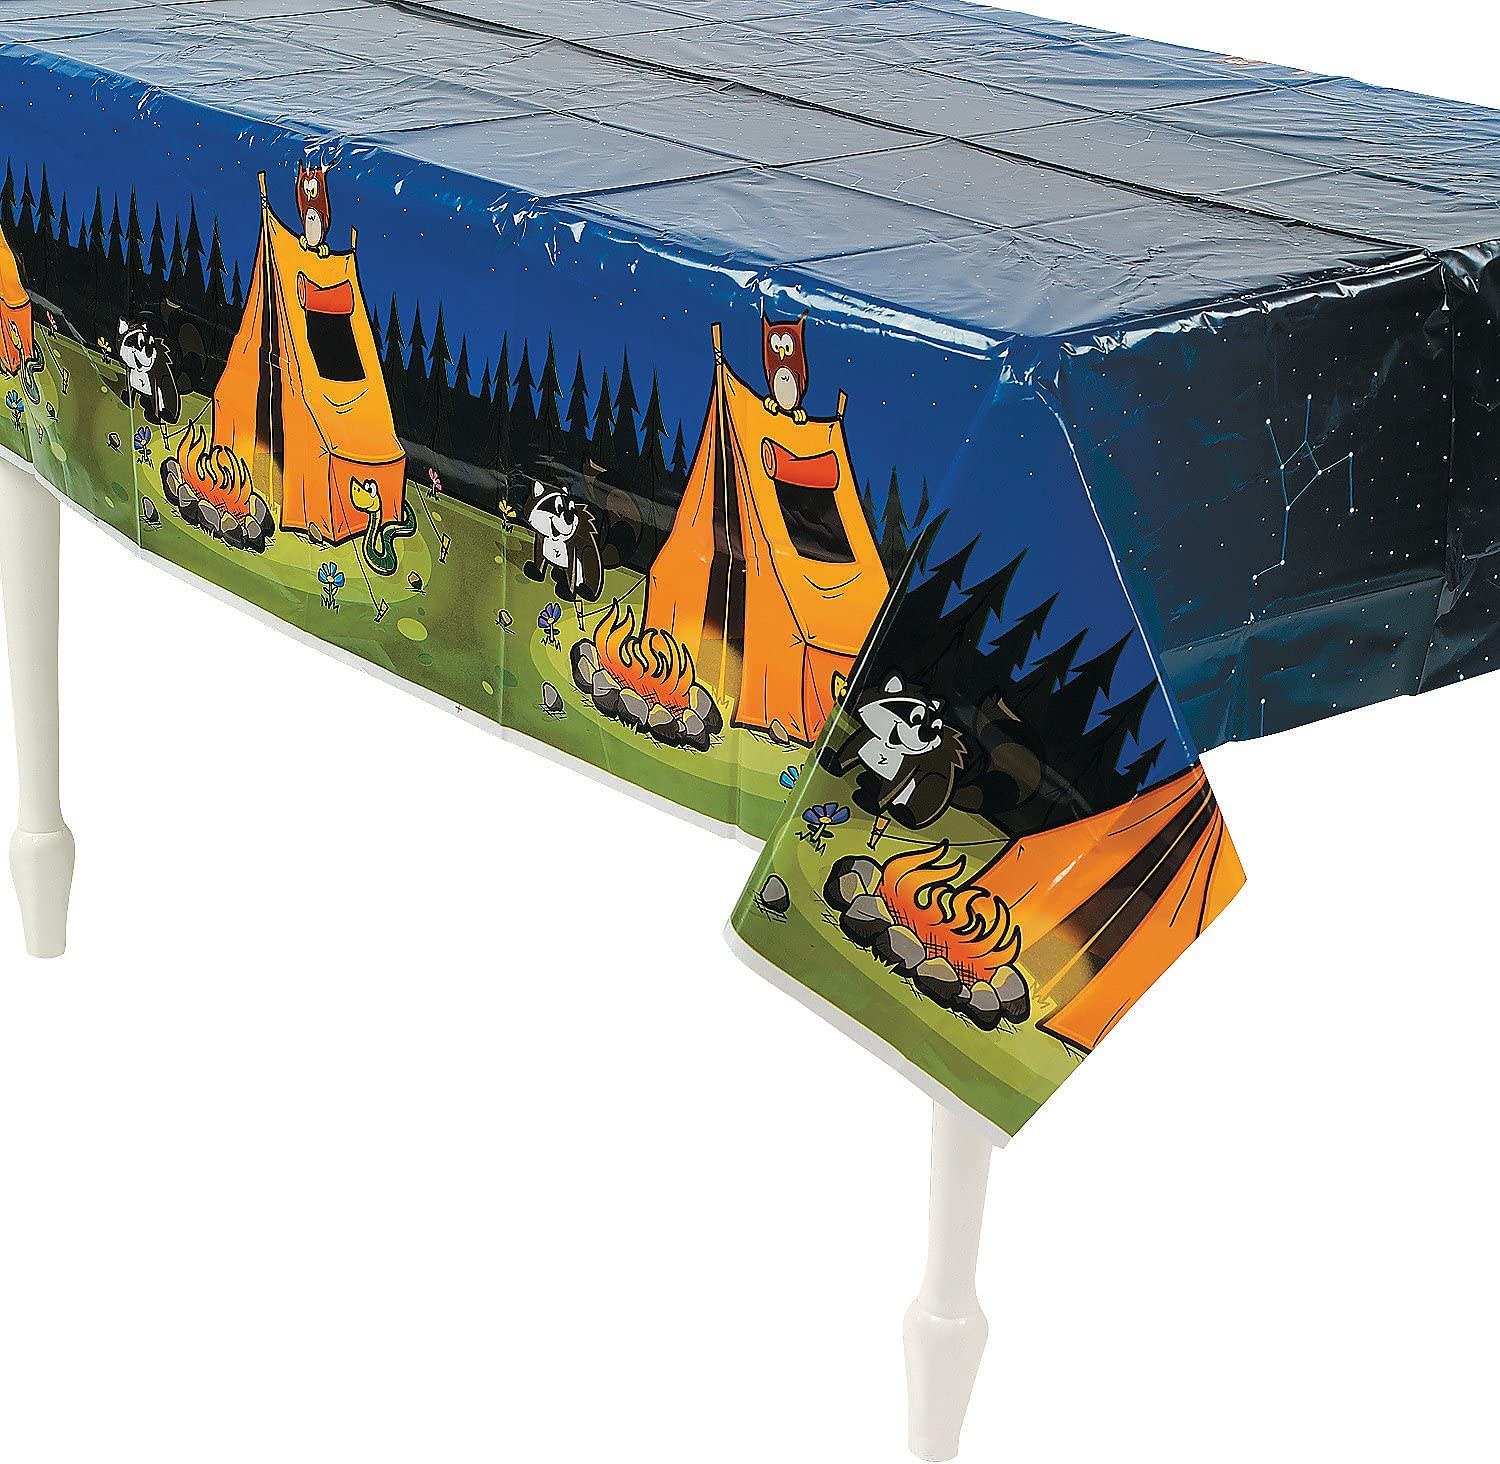 CAMP ADVENTURE TABLECOVER - 1 At the price Party Direct store Piece Supplies